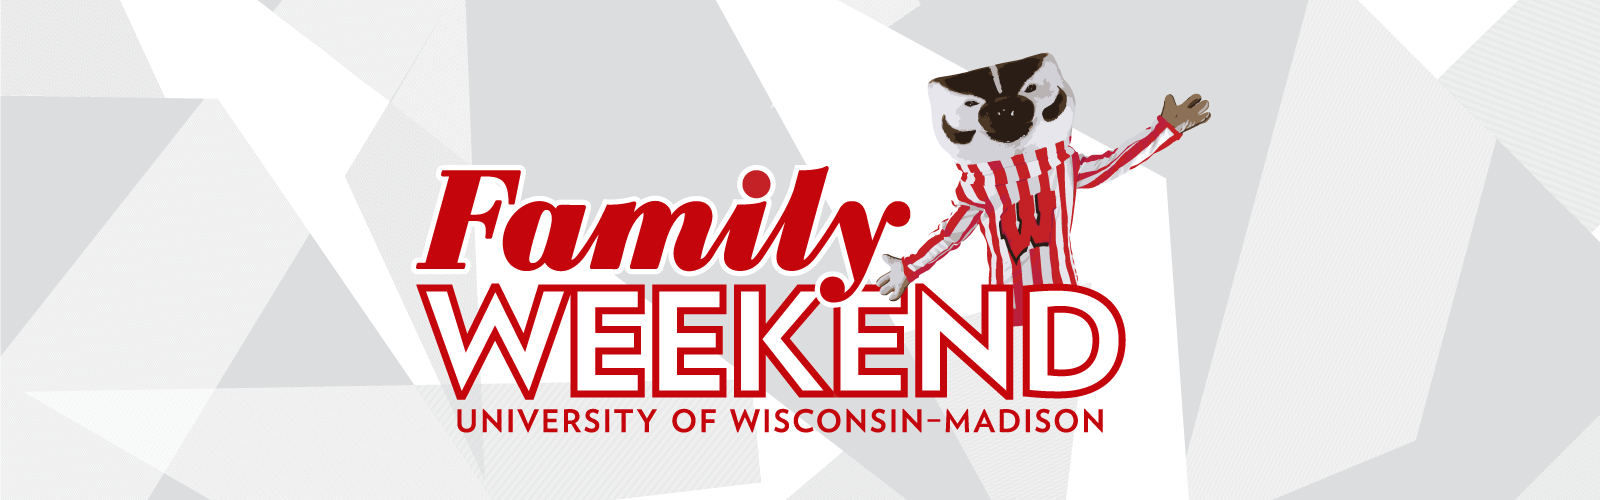 Family Weekend logo with Bucky Badger